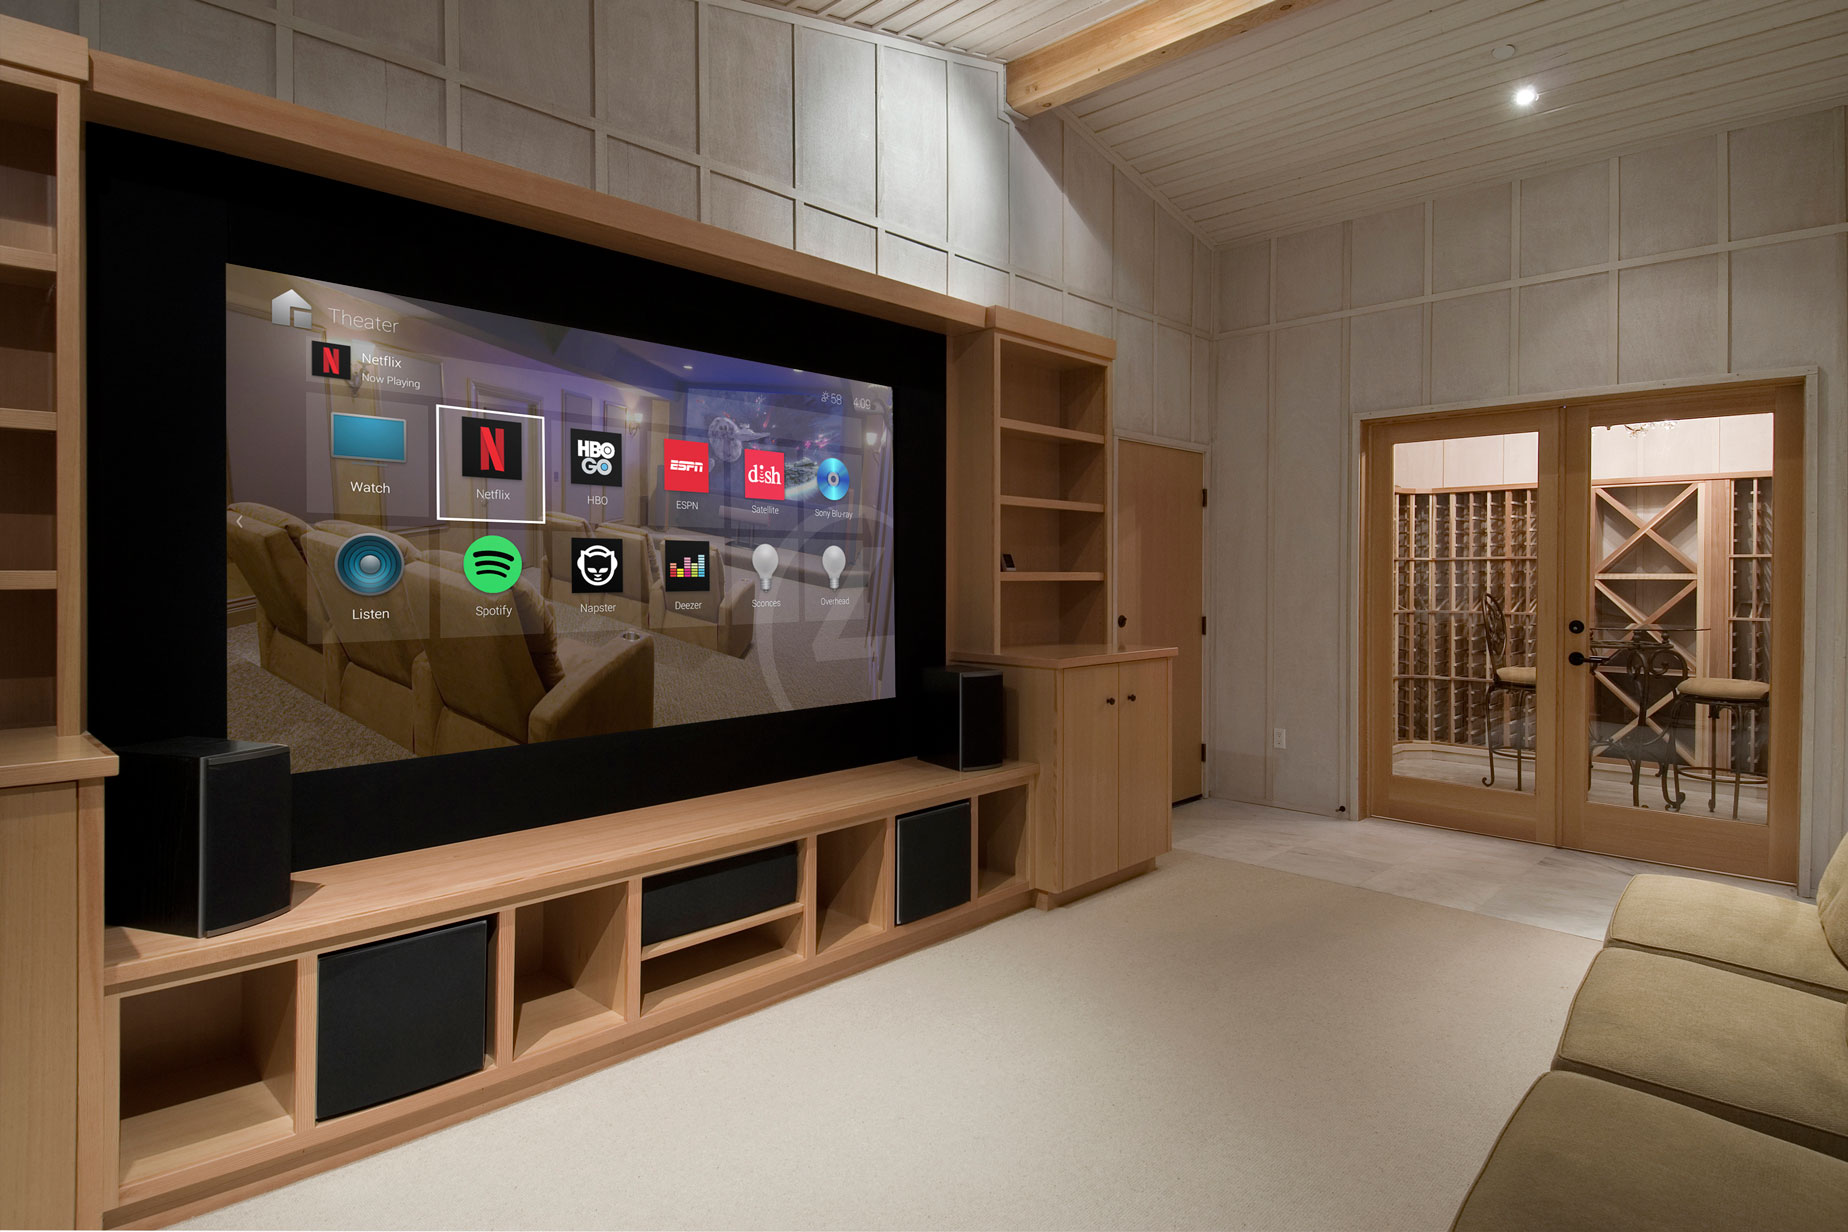 control4 home theatre screen